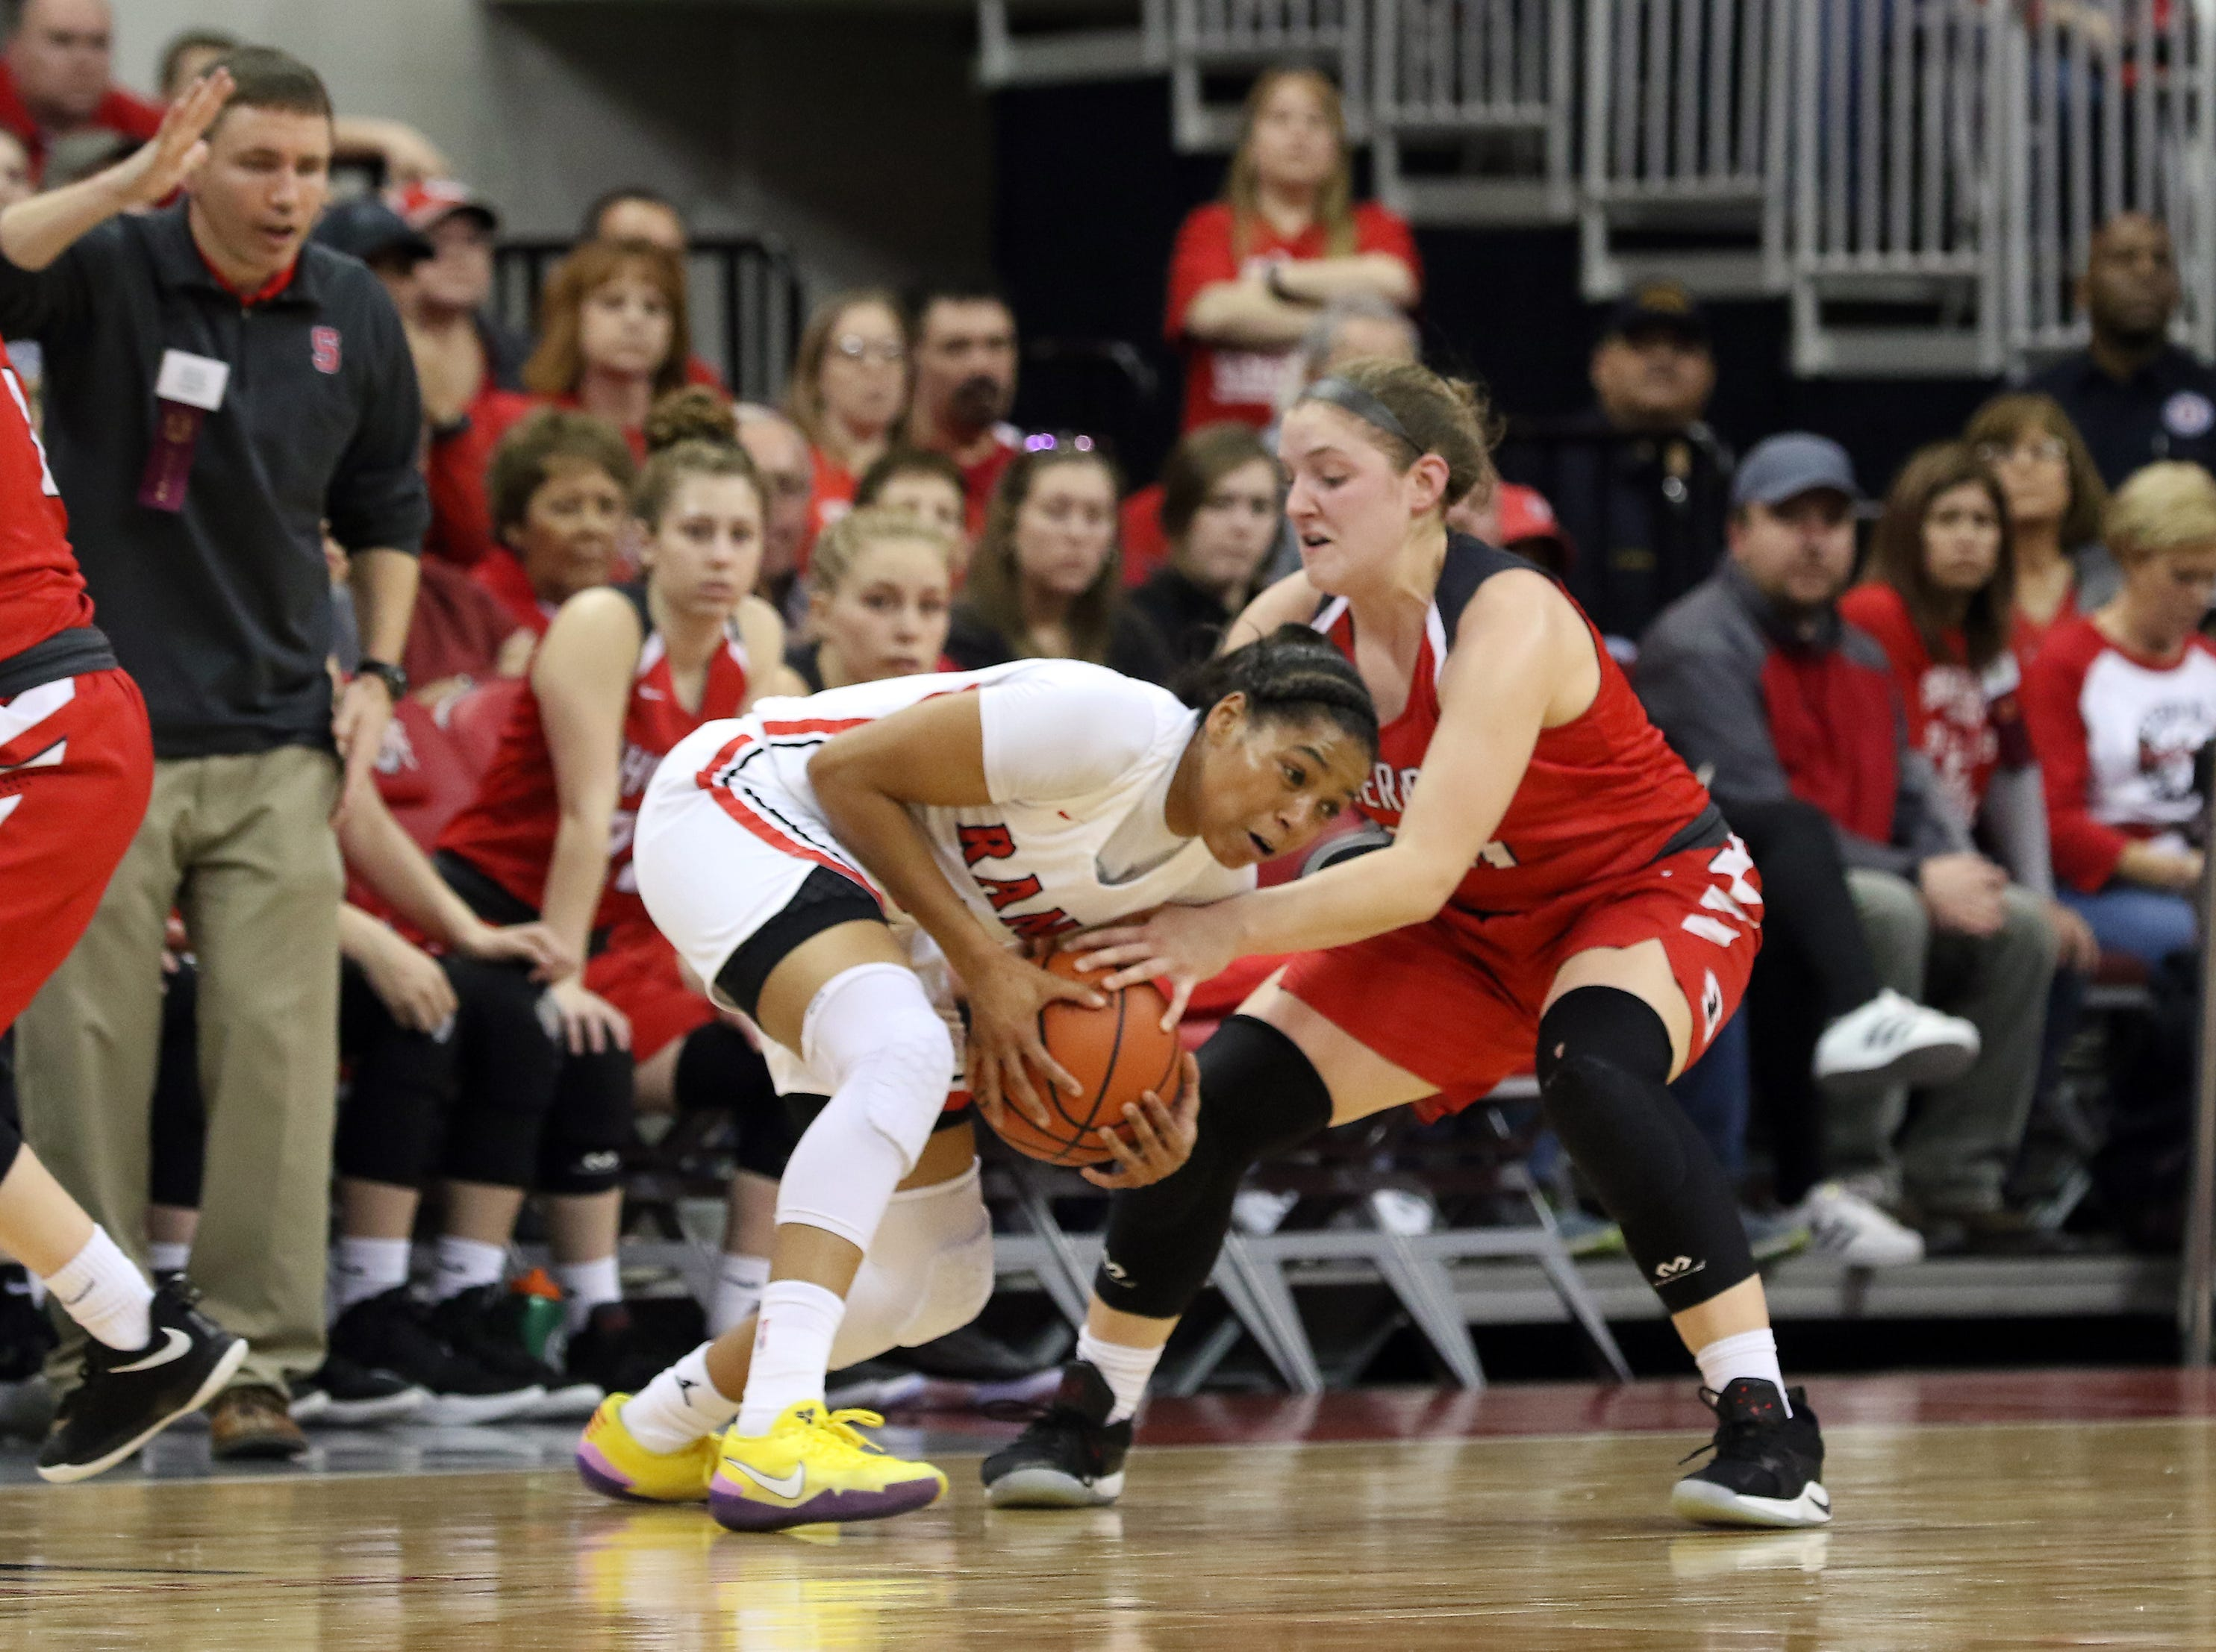 Sheridan's Kendyl Mick defends against Toledo Rogers during the DII state semis in Columbus on Thursday.